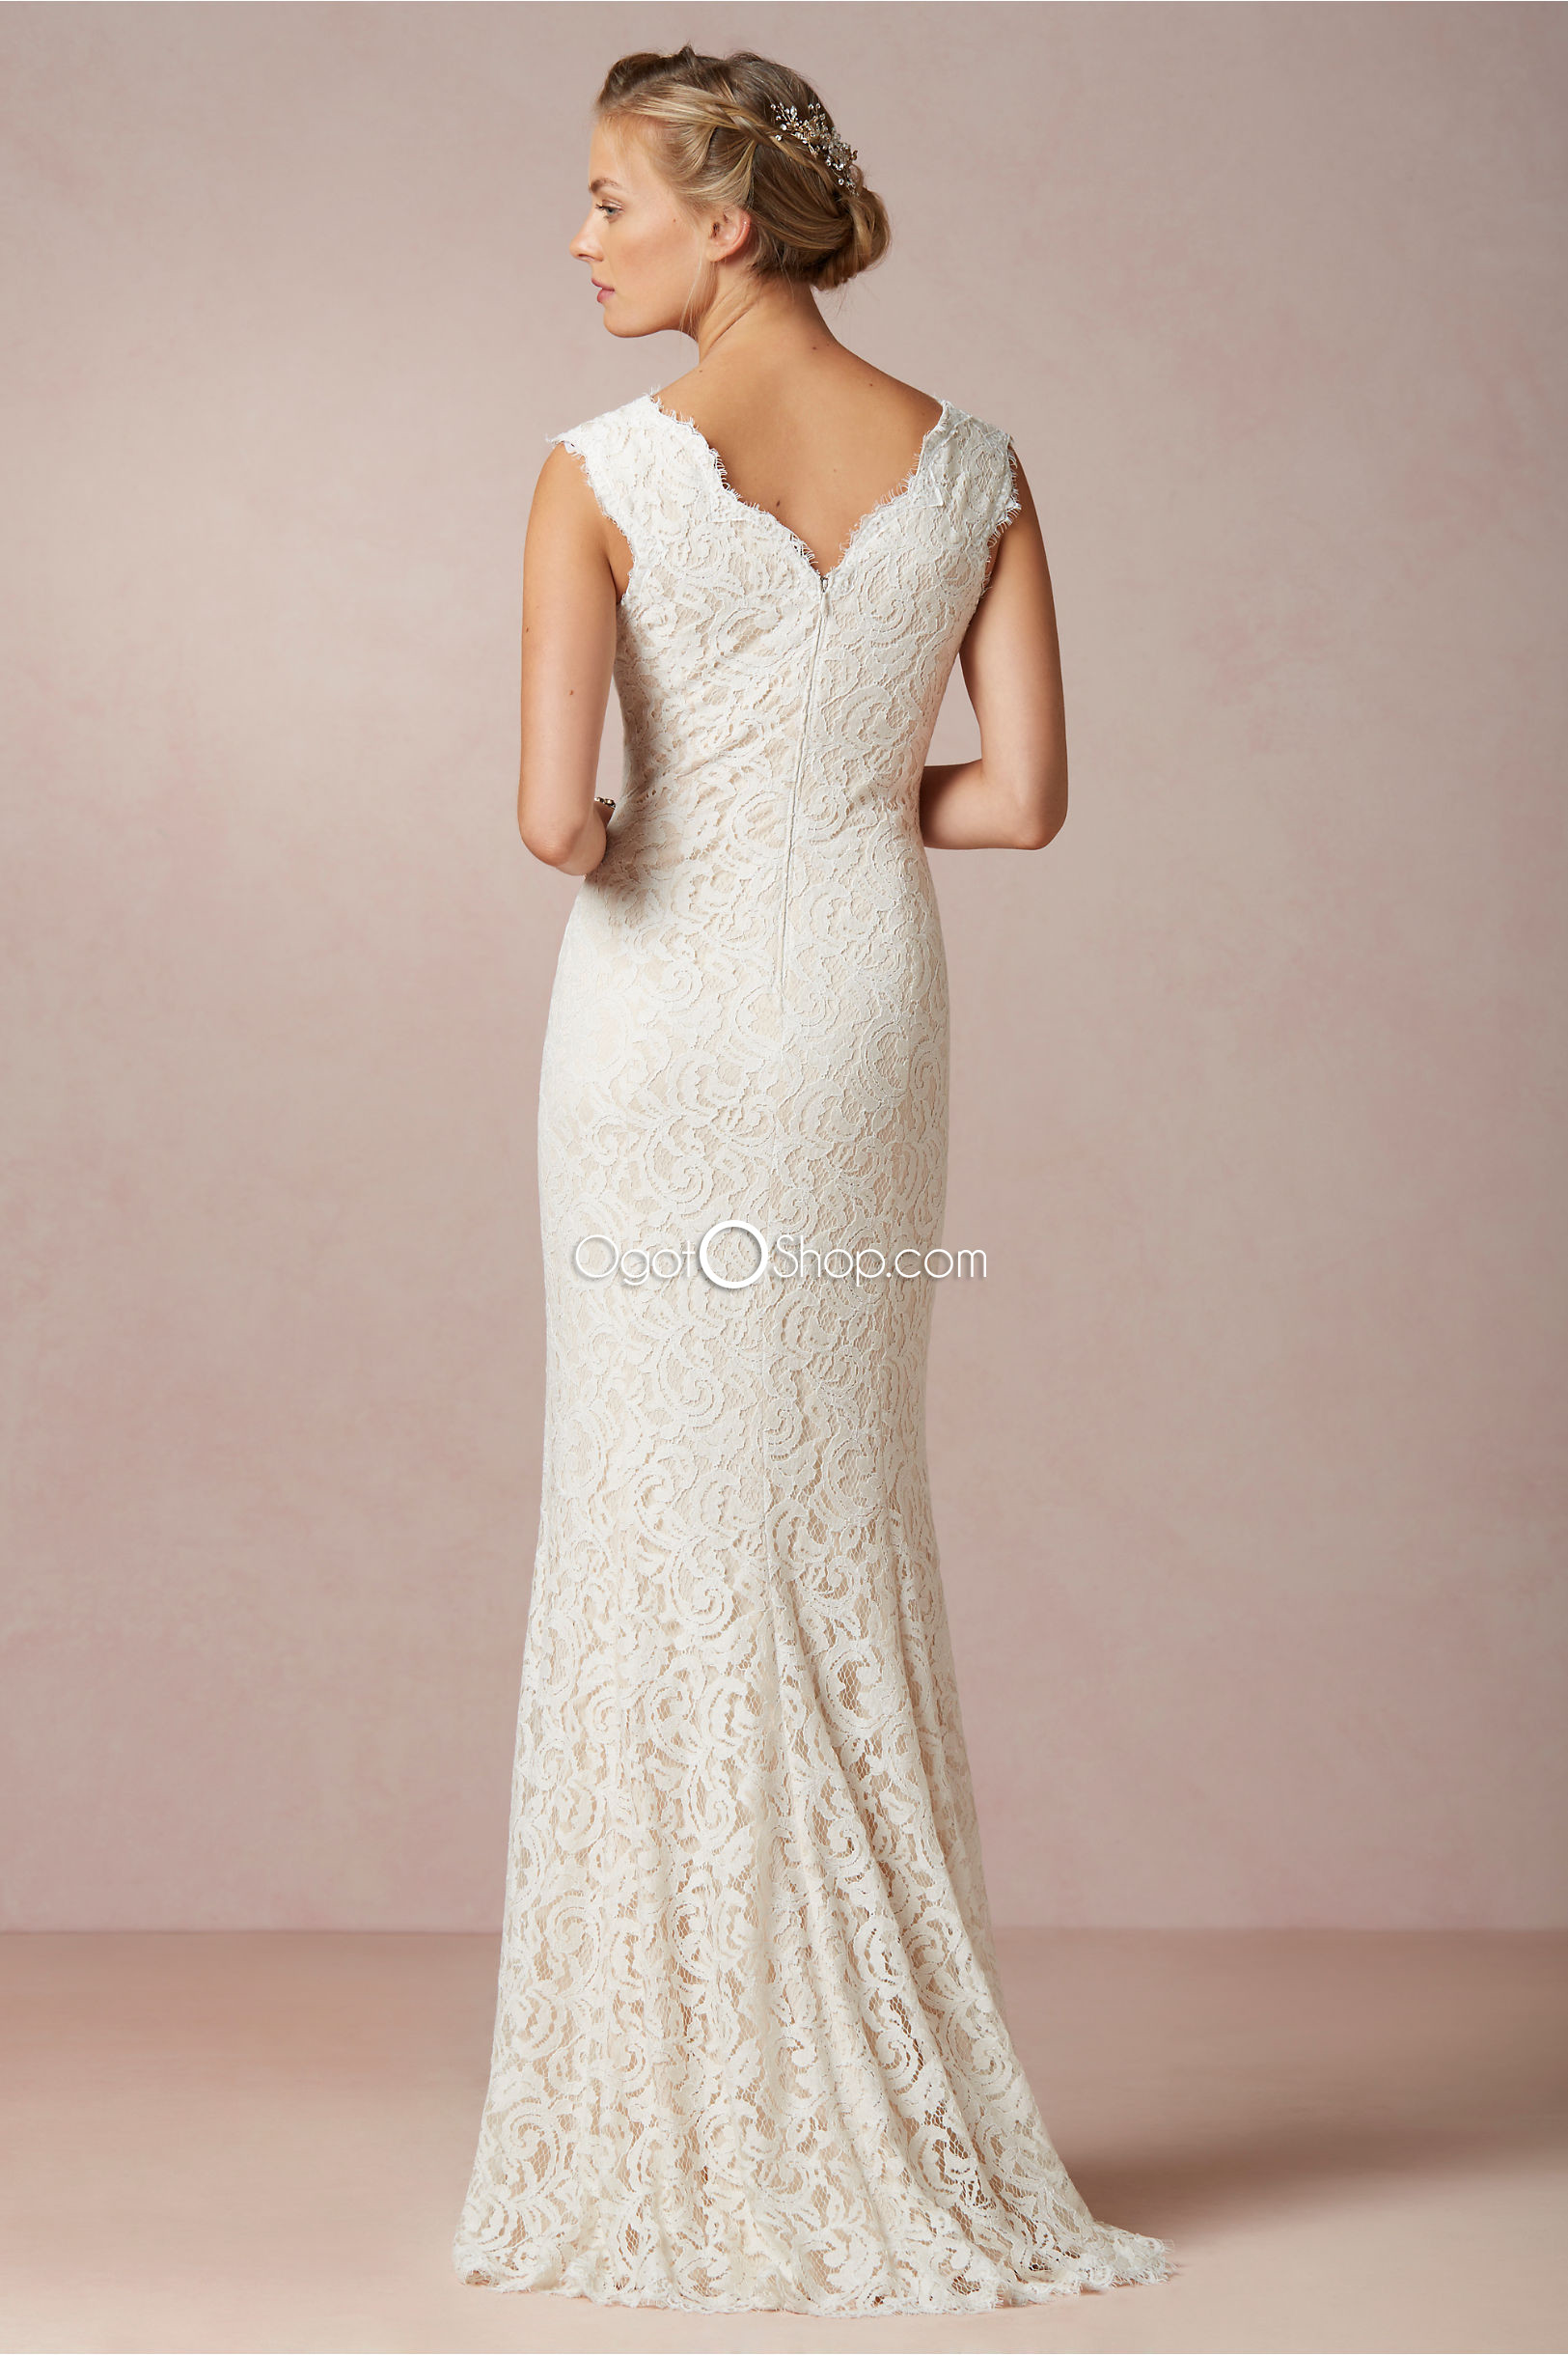 Sheath Dresses For Wedding